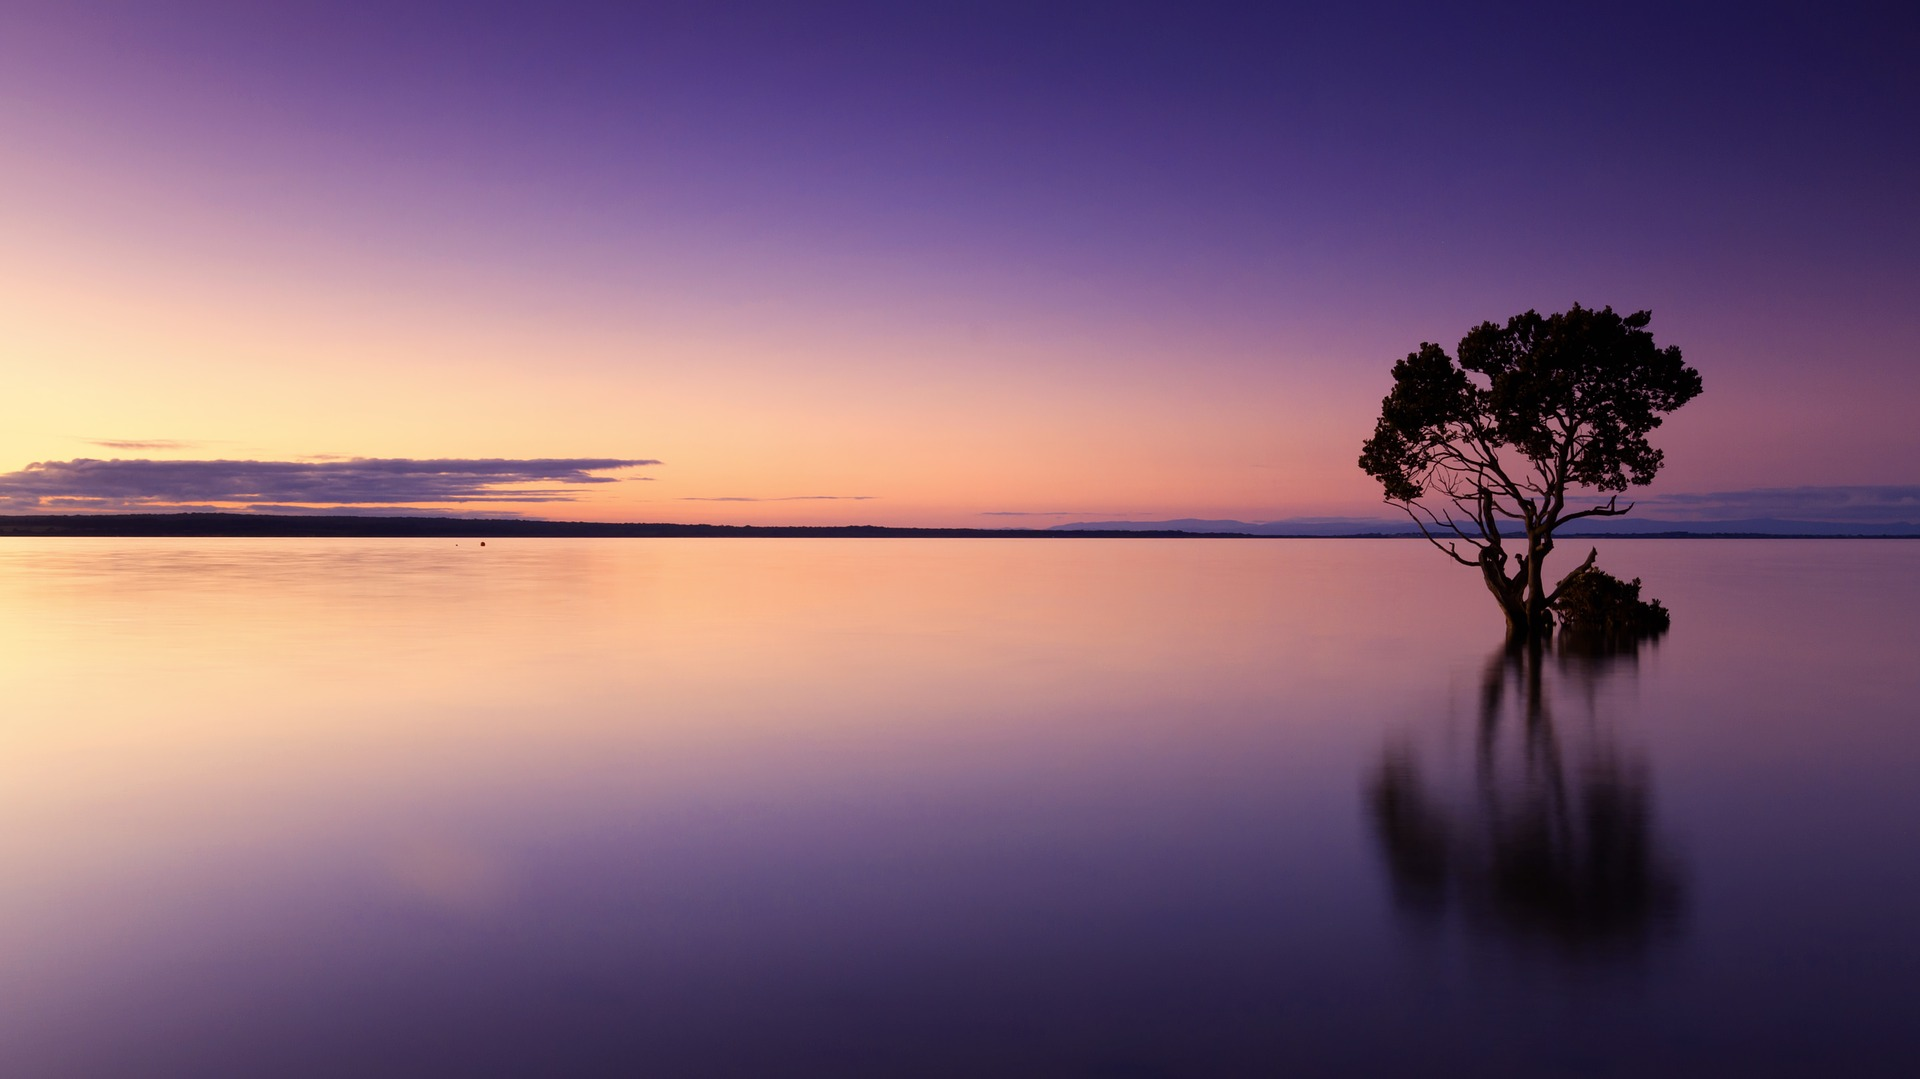 purple sunset seascape domestic violence mental health of female victims